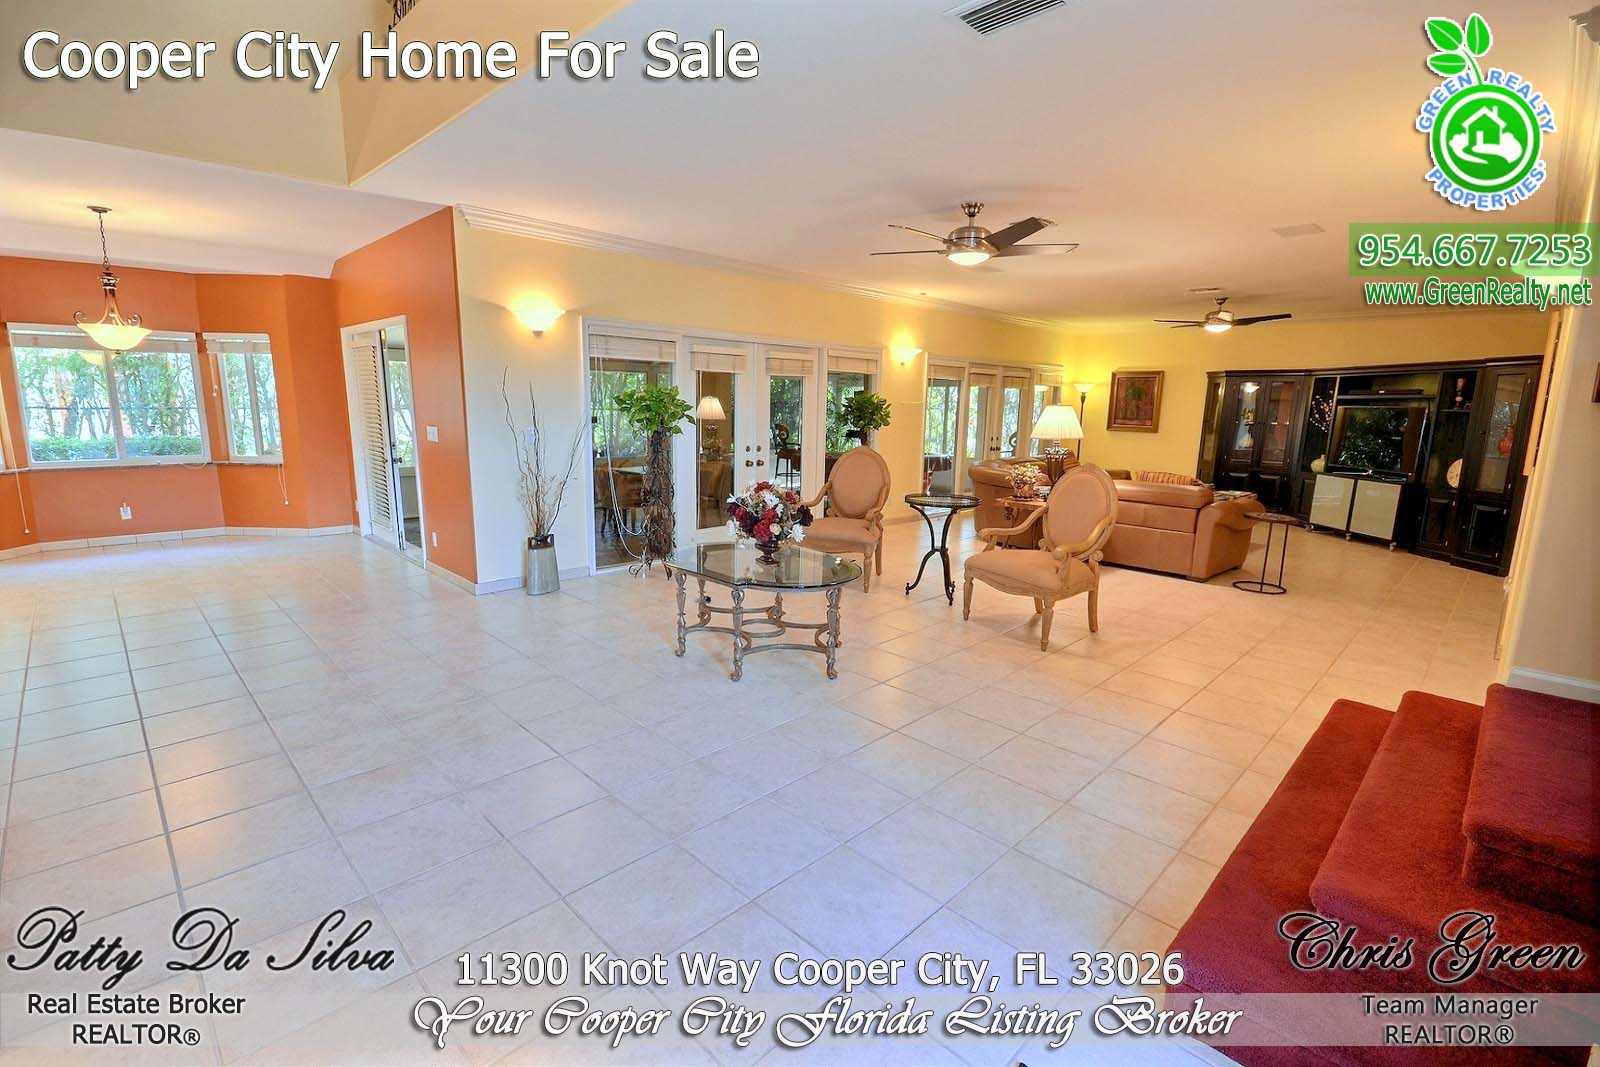 12 Homes For Sale in Rock Creek (4)